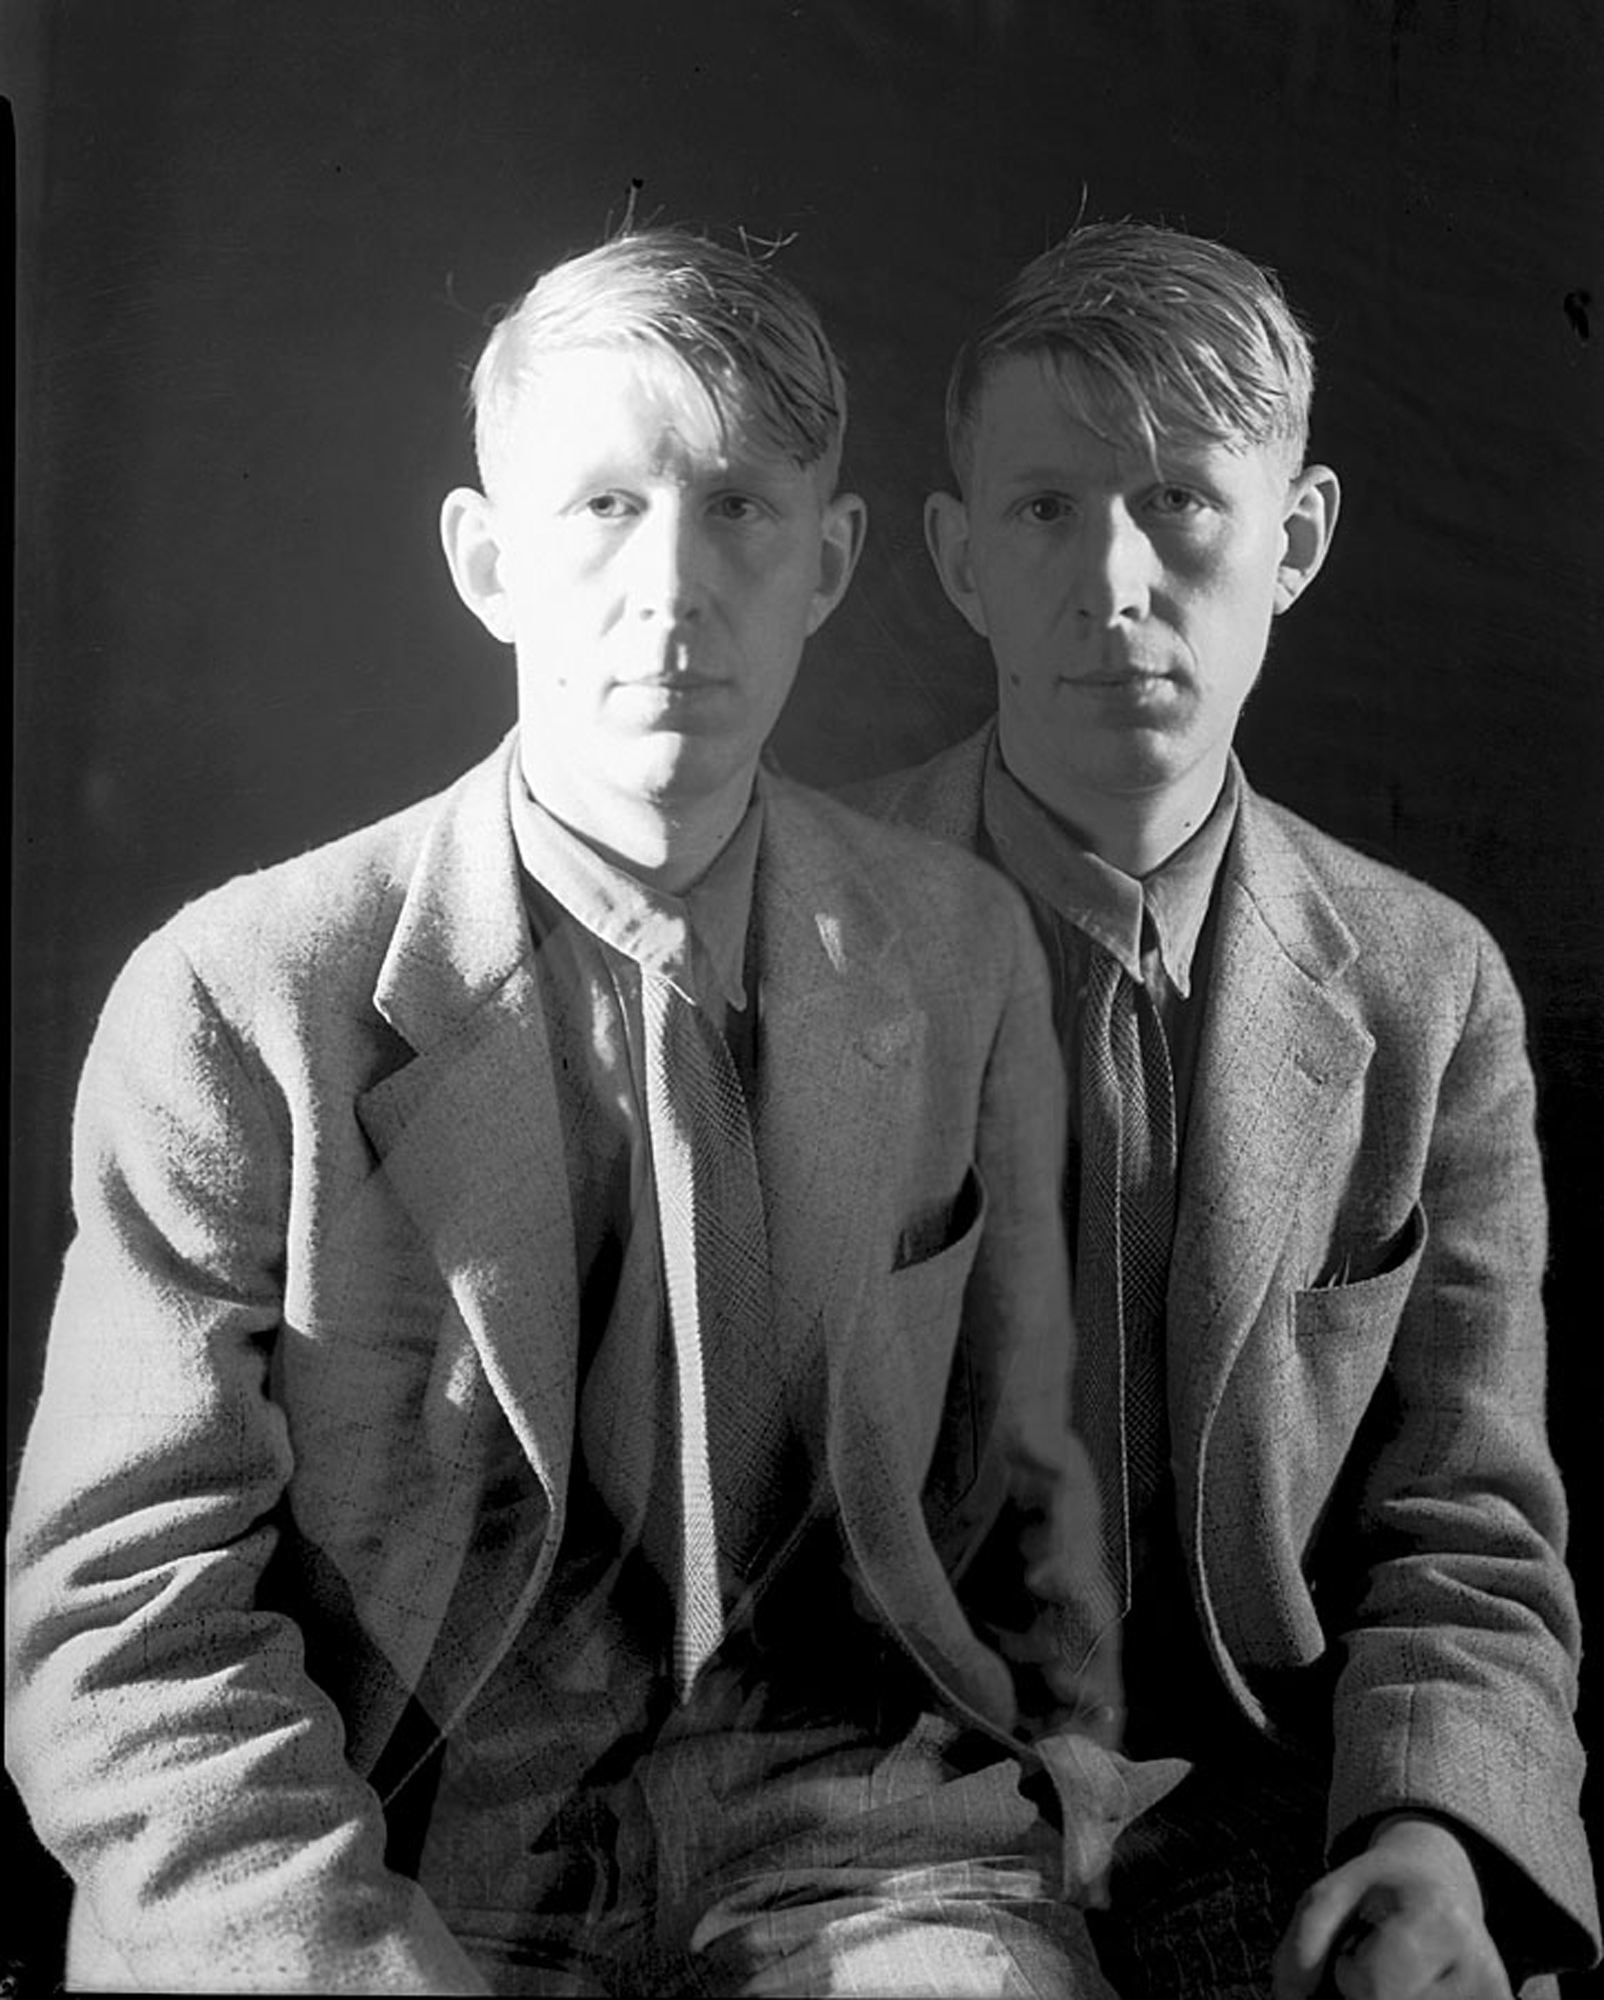 W H Auden by Cecil Beaton